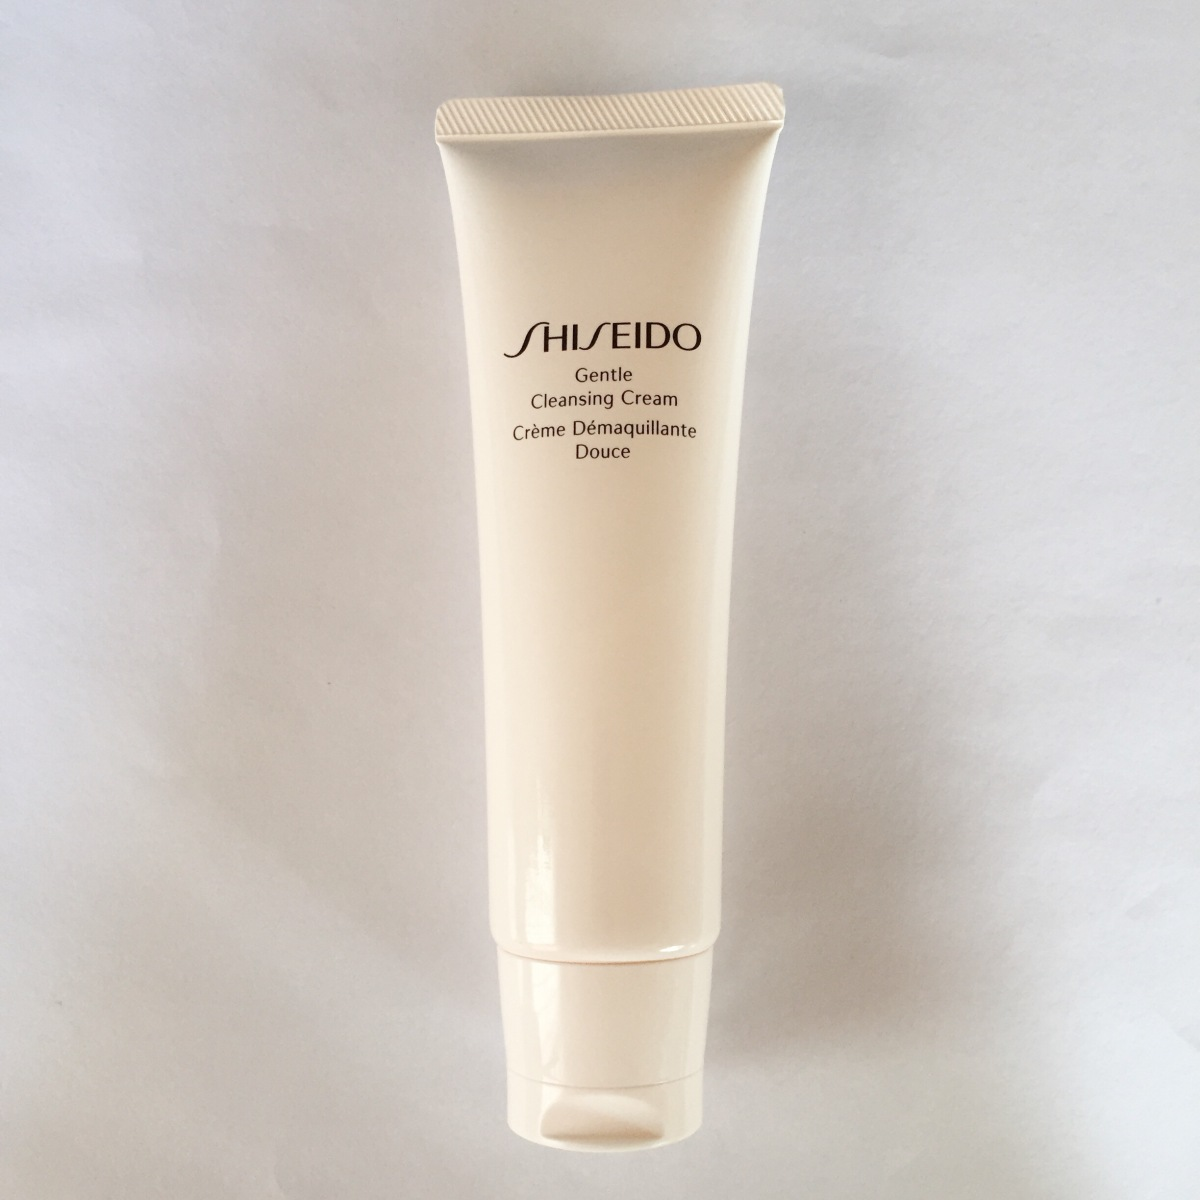 How Shiseido Gentle Cleansing Cream worked for me